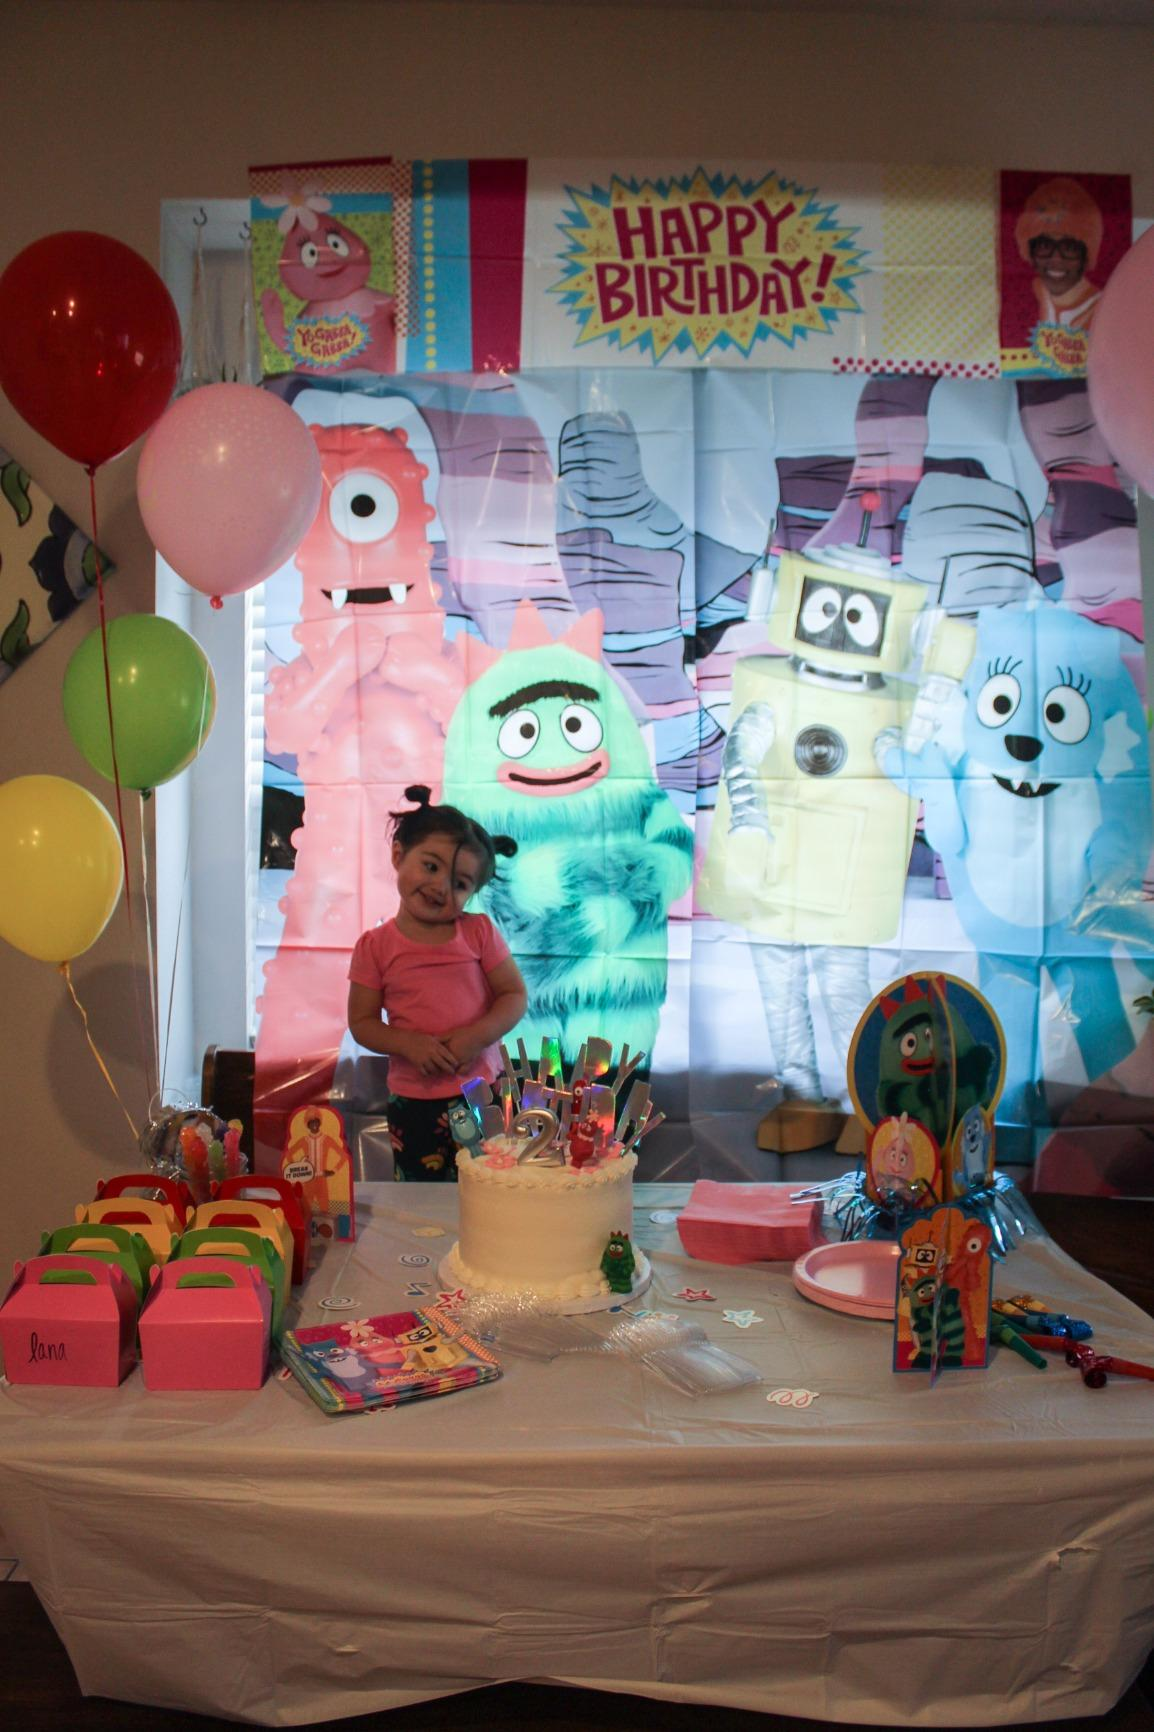 Yo Gabba Gabba Birthday Party Decorations from images-wixmp-ed30a86b8c4ca887773594c2.wixmp.com